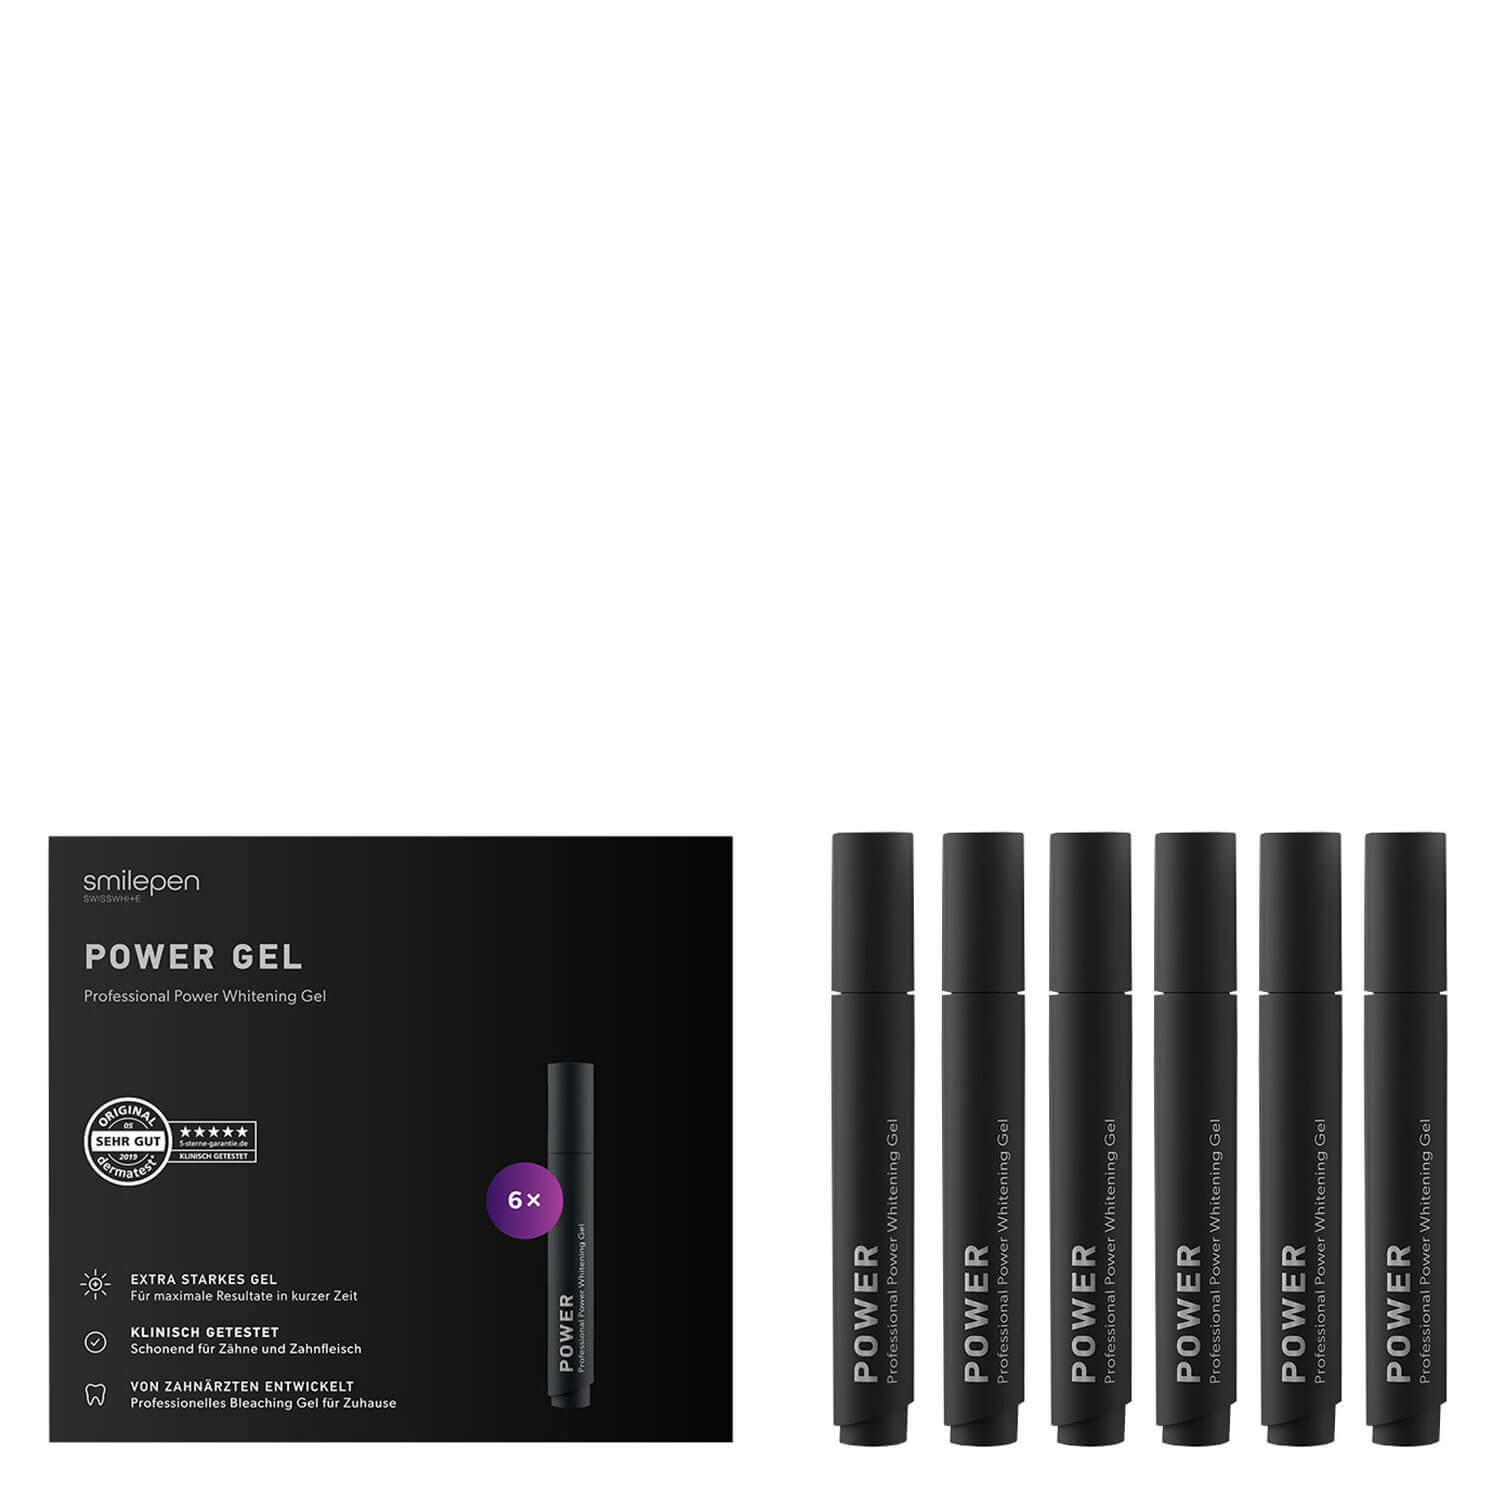 smilepen - Power Gel